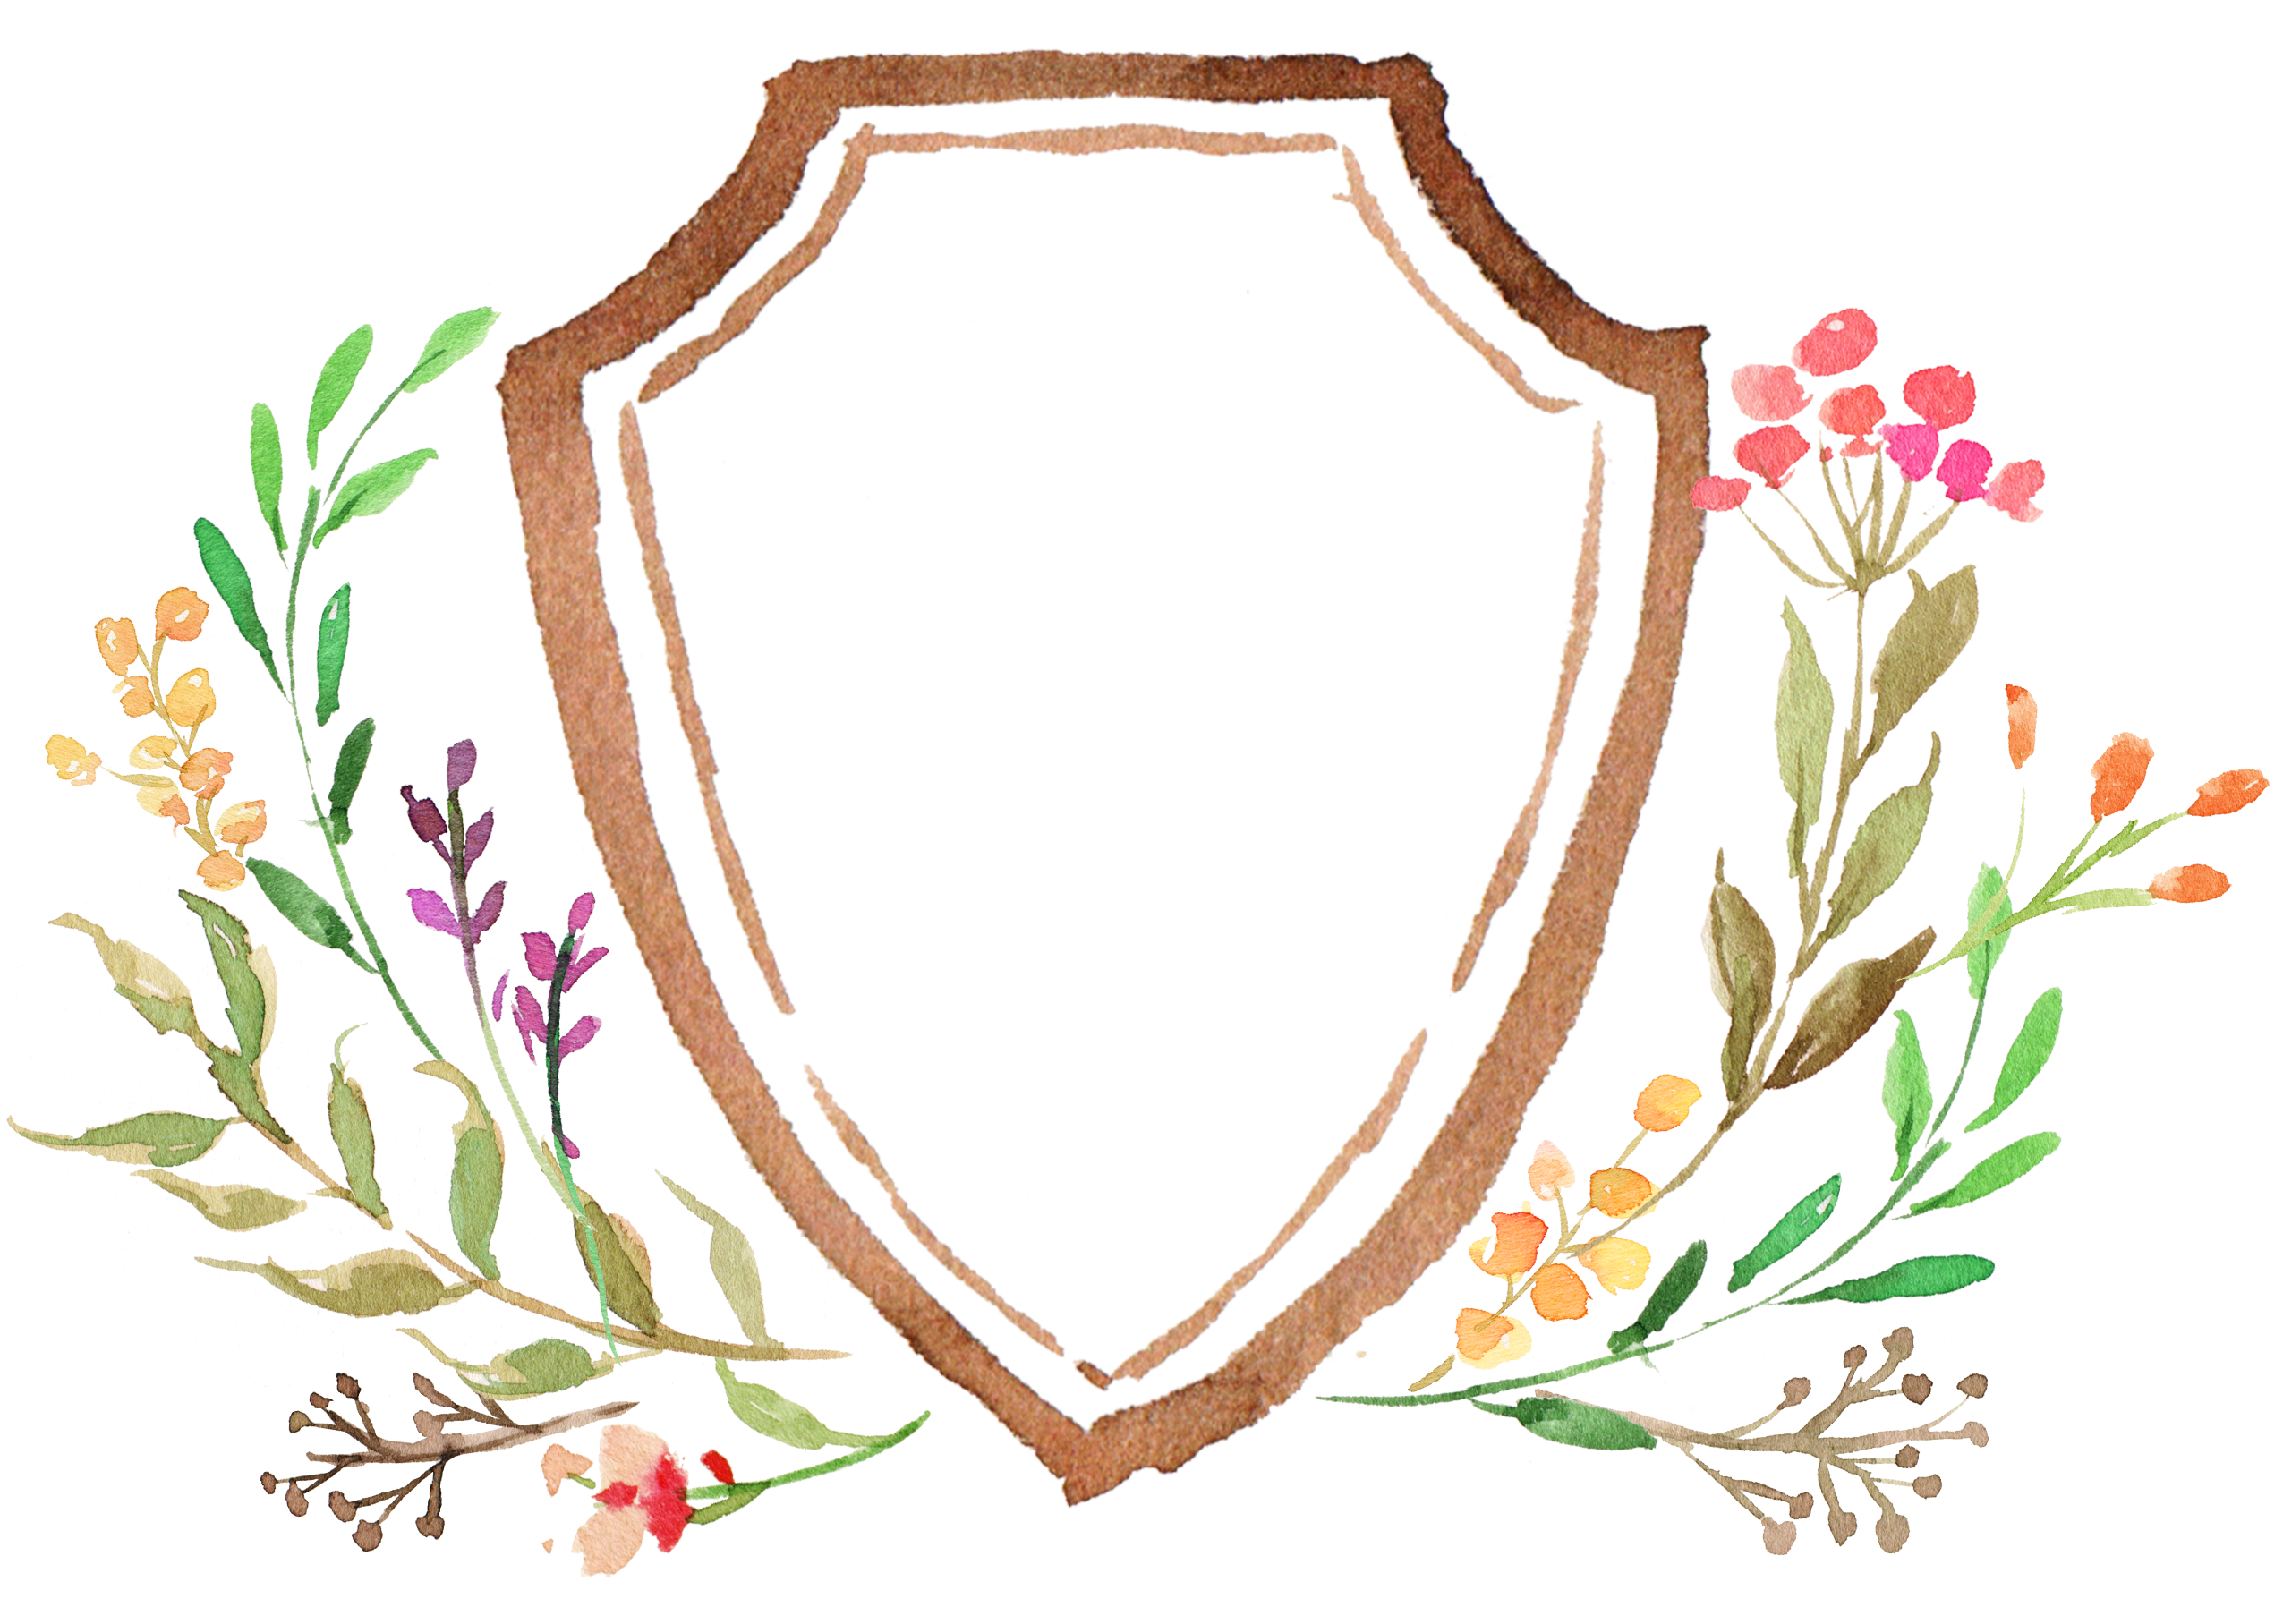 svg freeuse library Shield drawing at getdrawings. Boho clipart